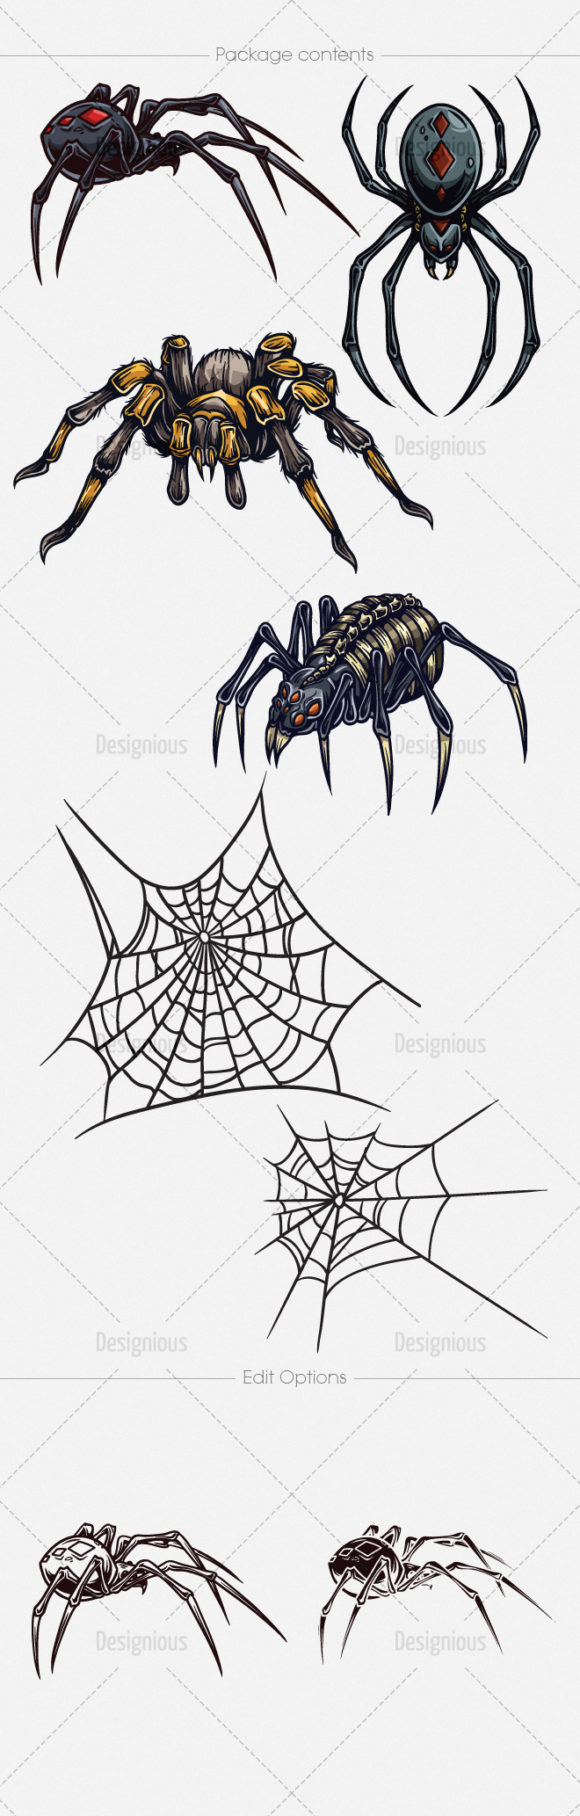 Spiders Vector Pack 1 products designious vector spiders 1 large